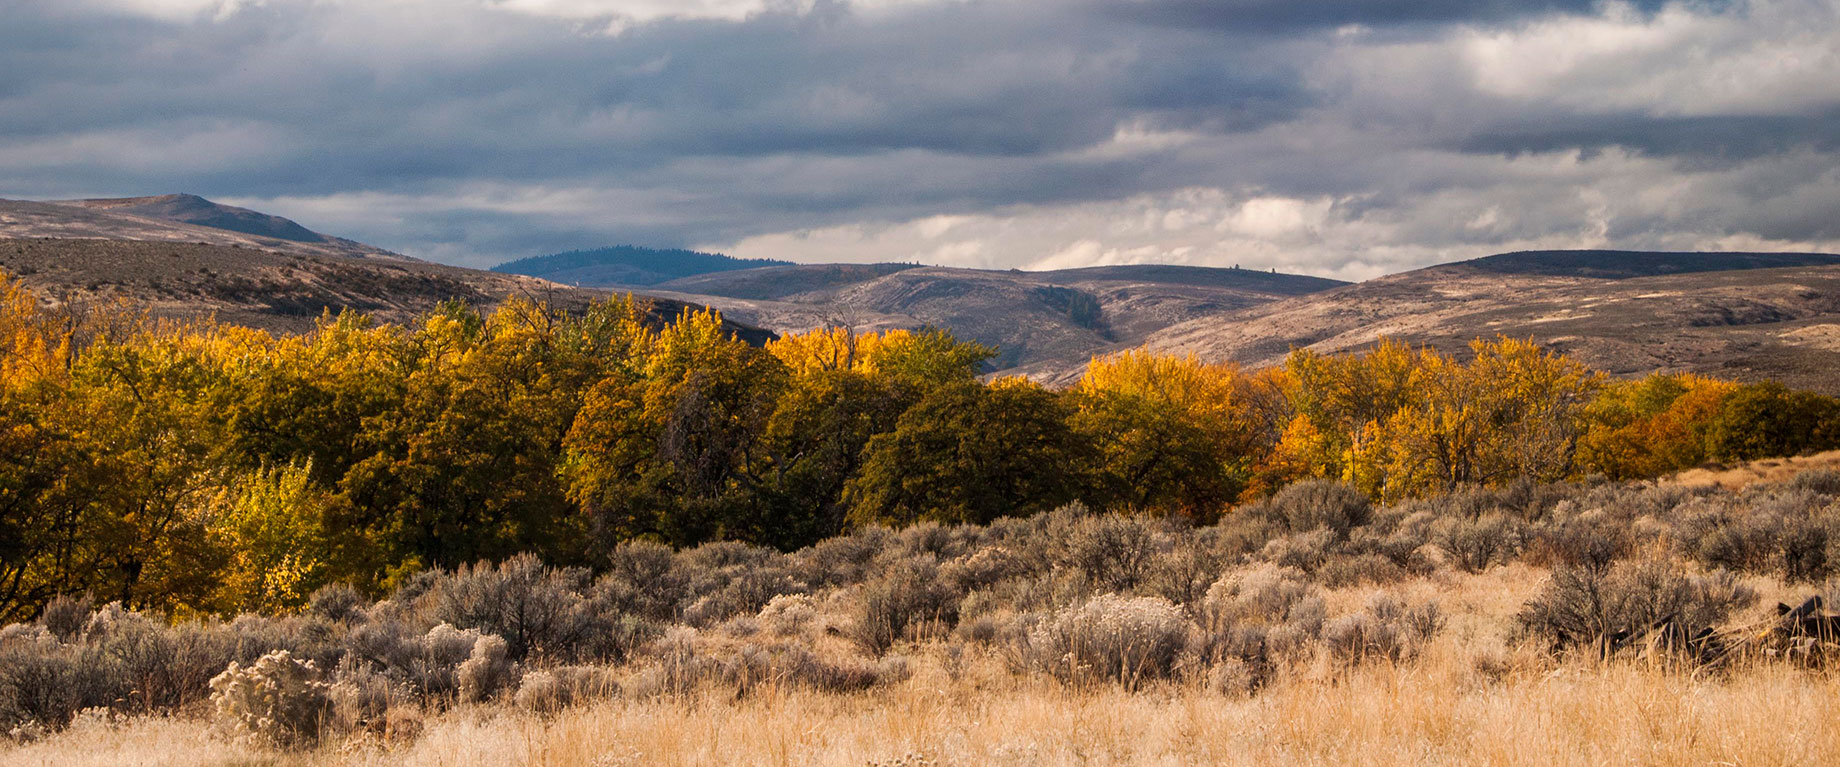 Cowiche Canyon Conservancy Hiking Trails Shrub-Steppe Yakima, WA Conservation Photo: David Hagen